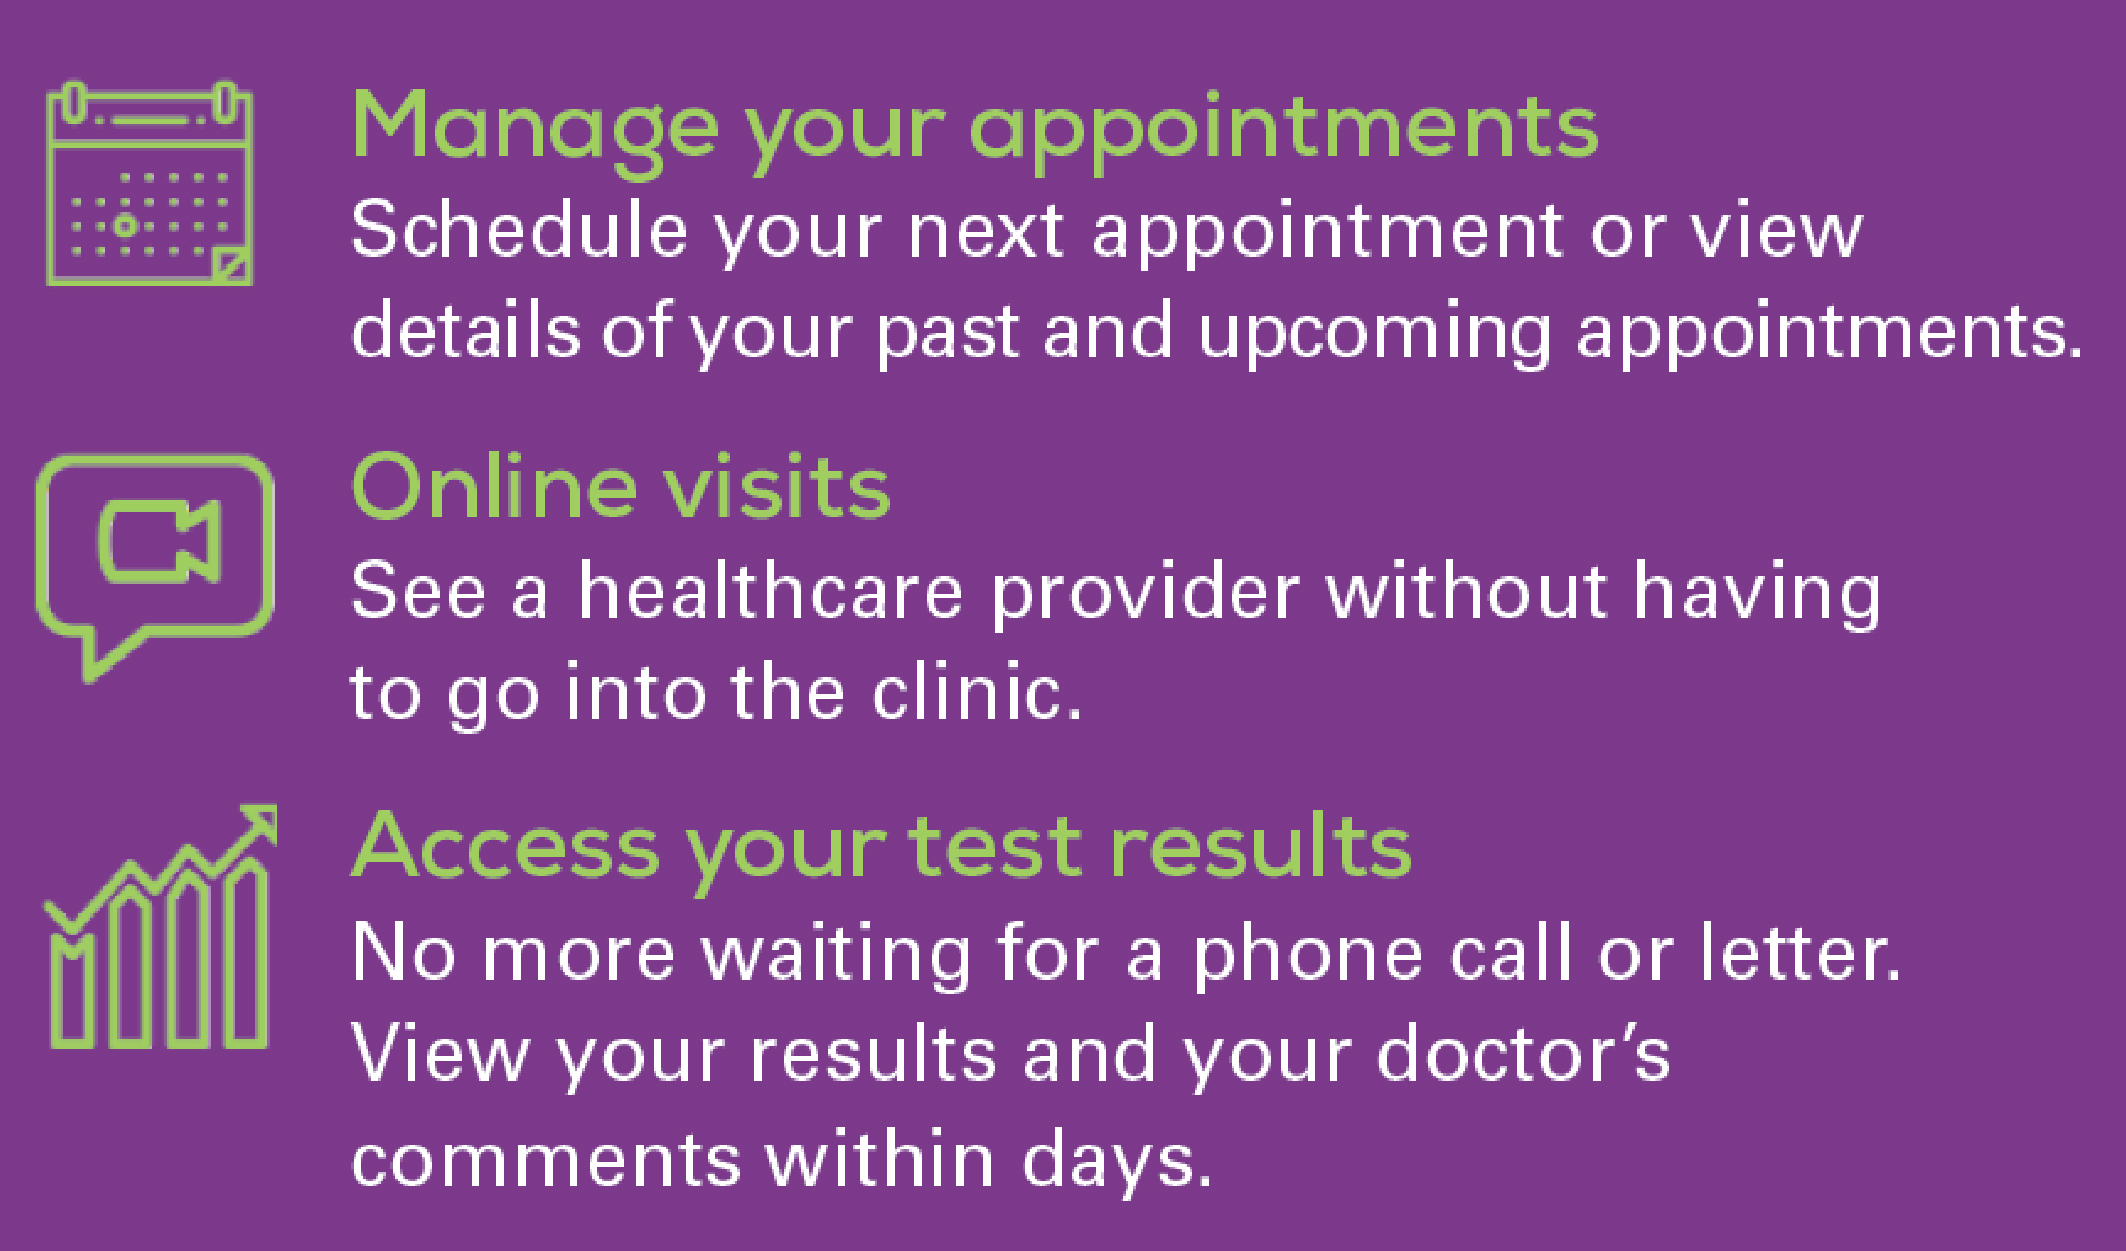 Manage your appointments, Online visits, Access your test results